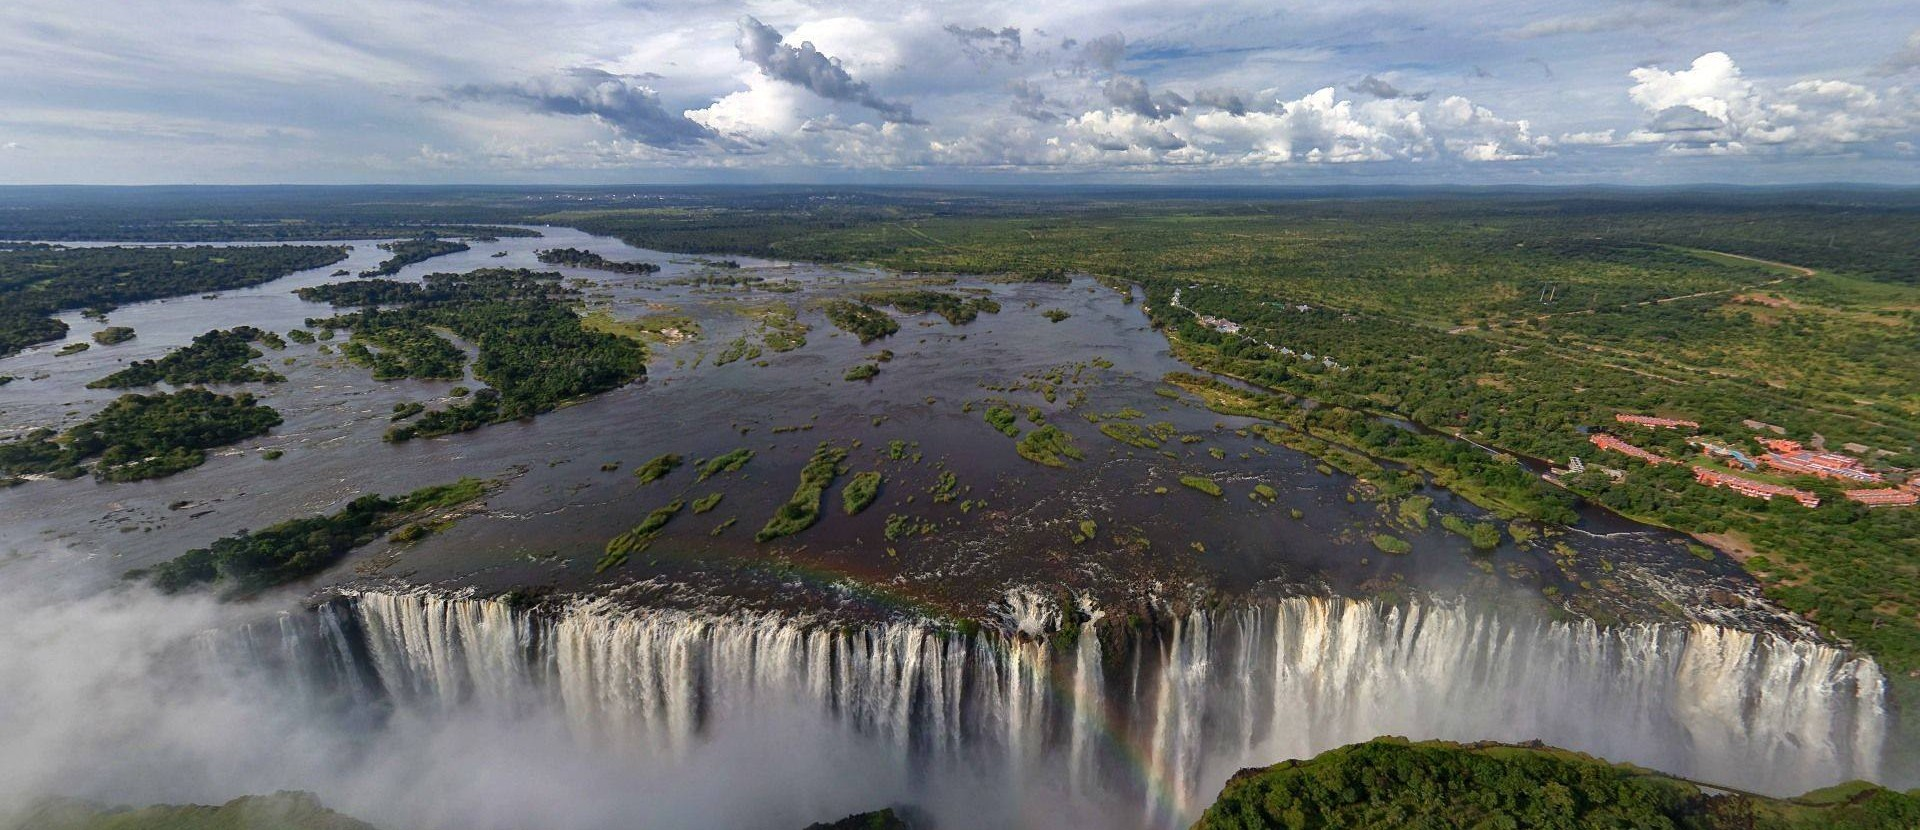 Victoria Falls Is The Largest Curtain Of Falling Water In